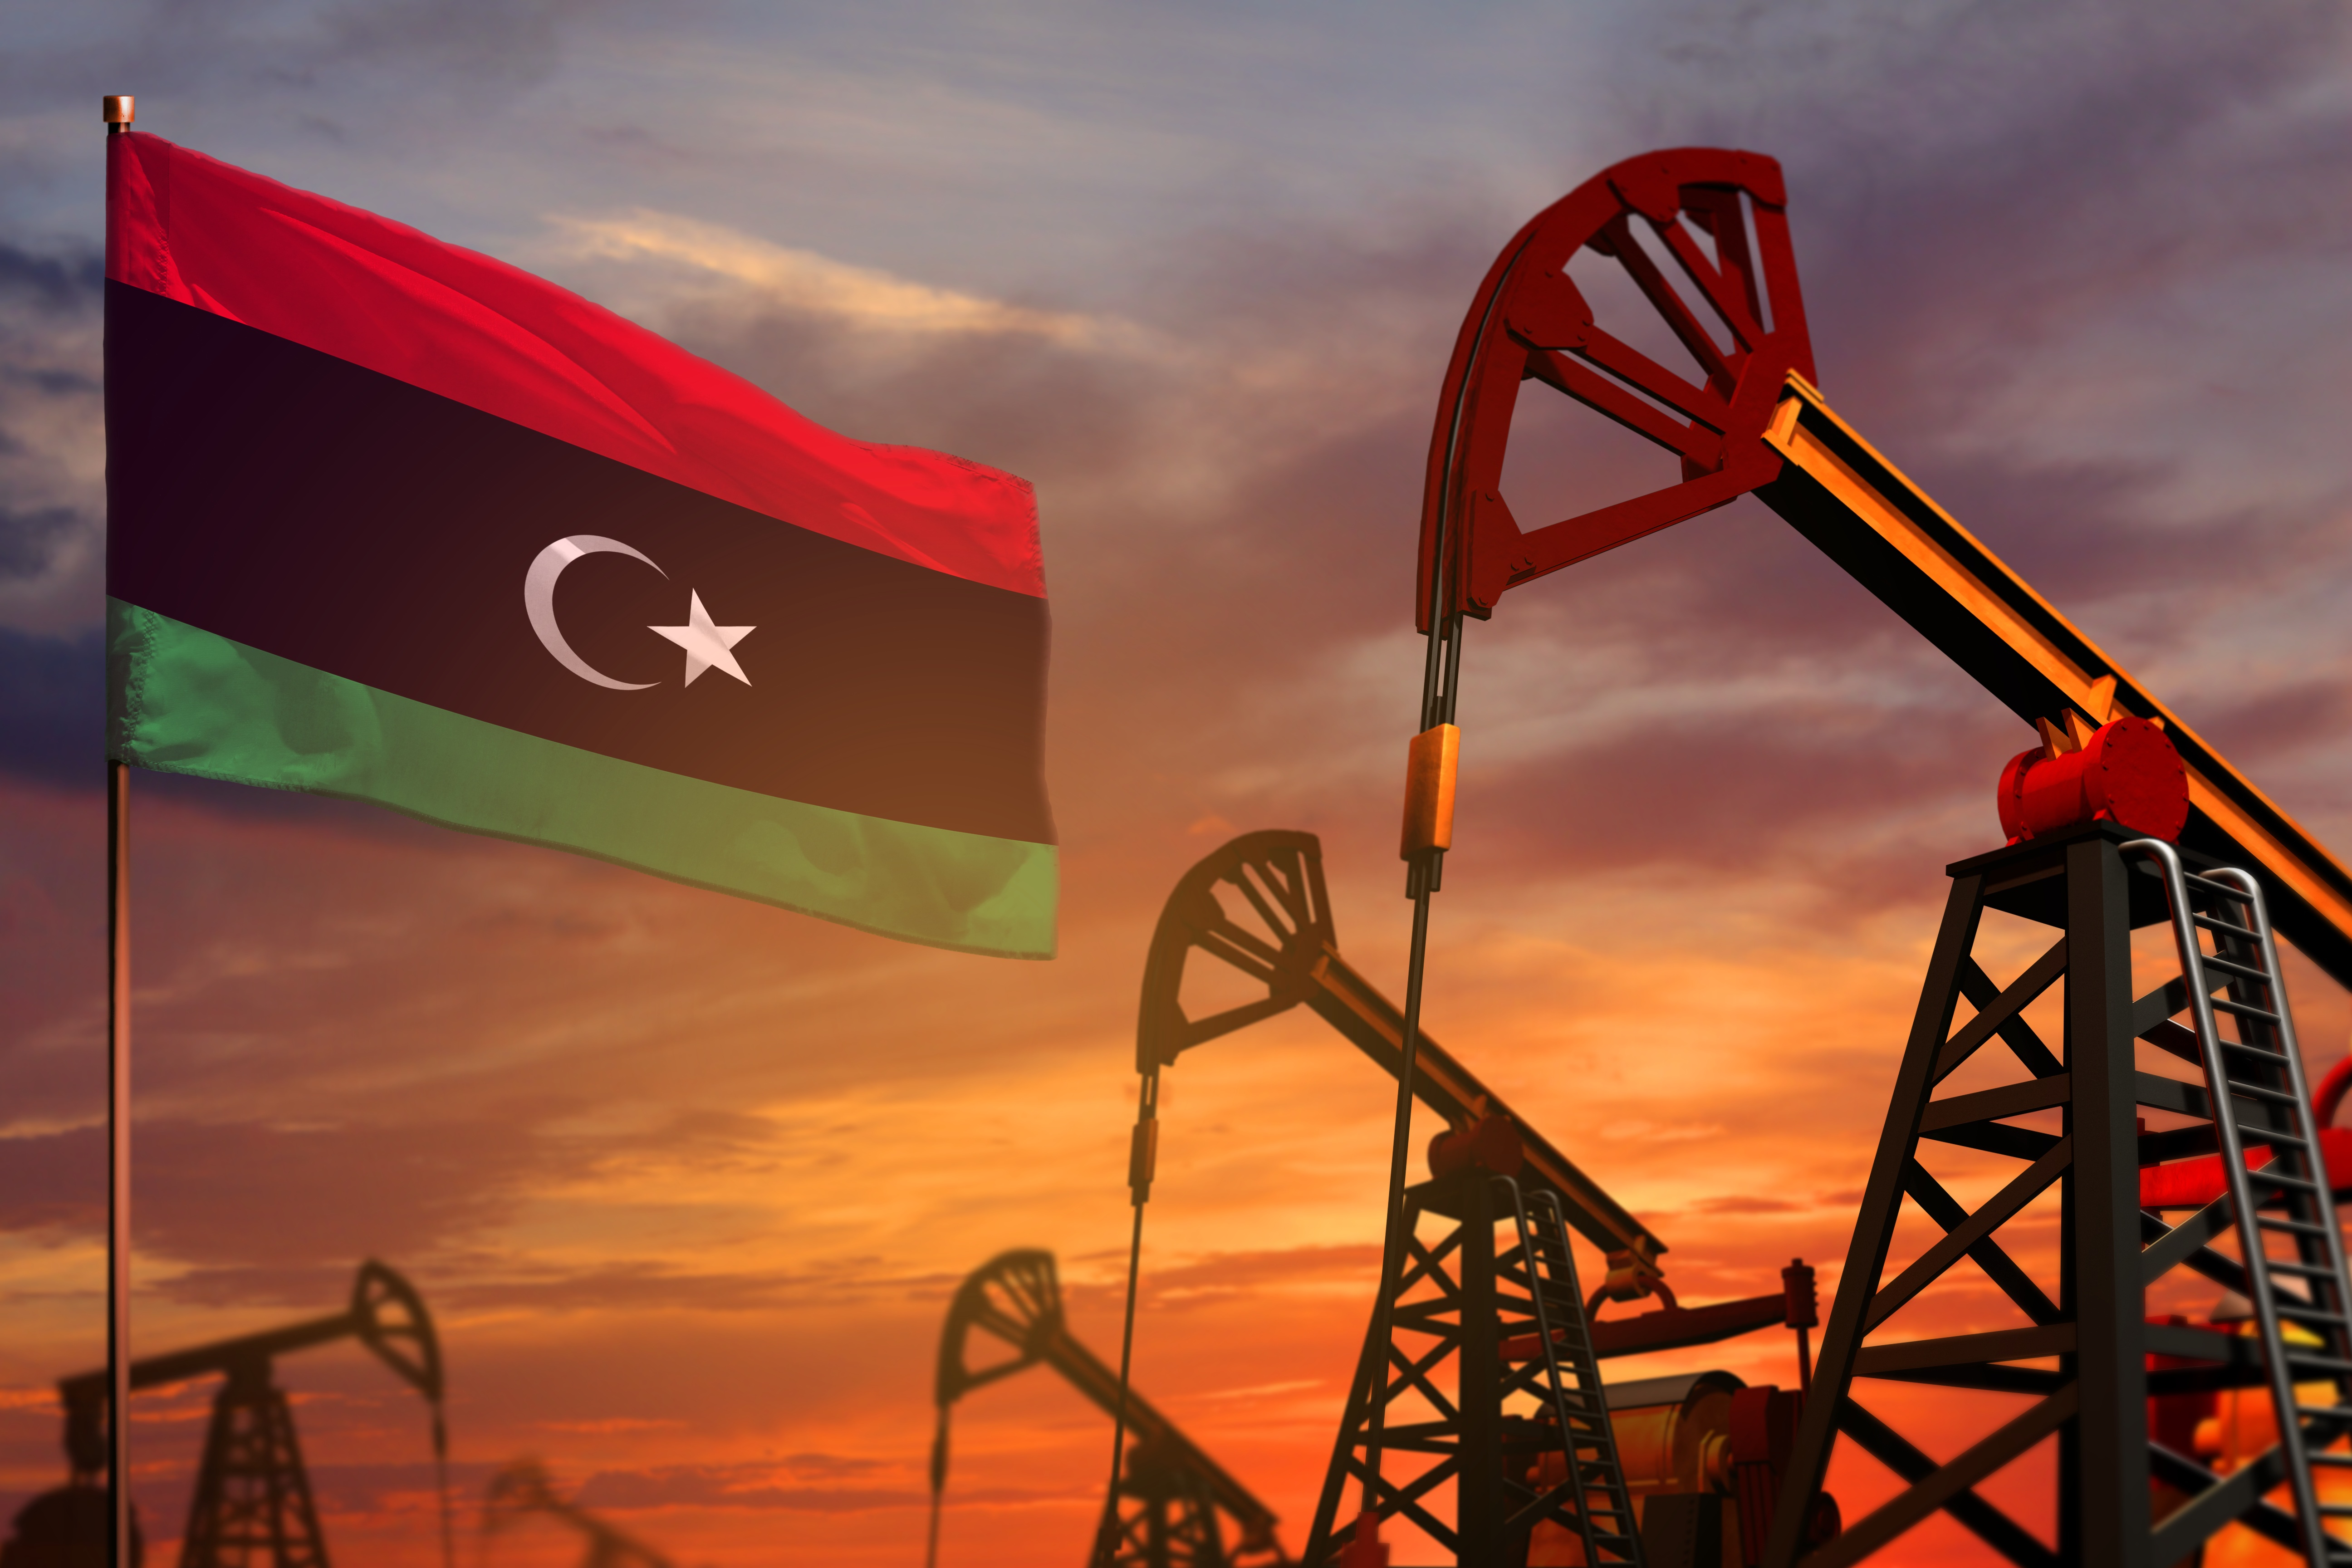 Libya Unrest: 5 Geopolitical Effects You Need to Know